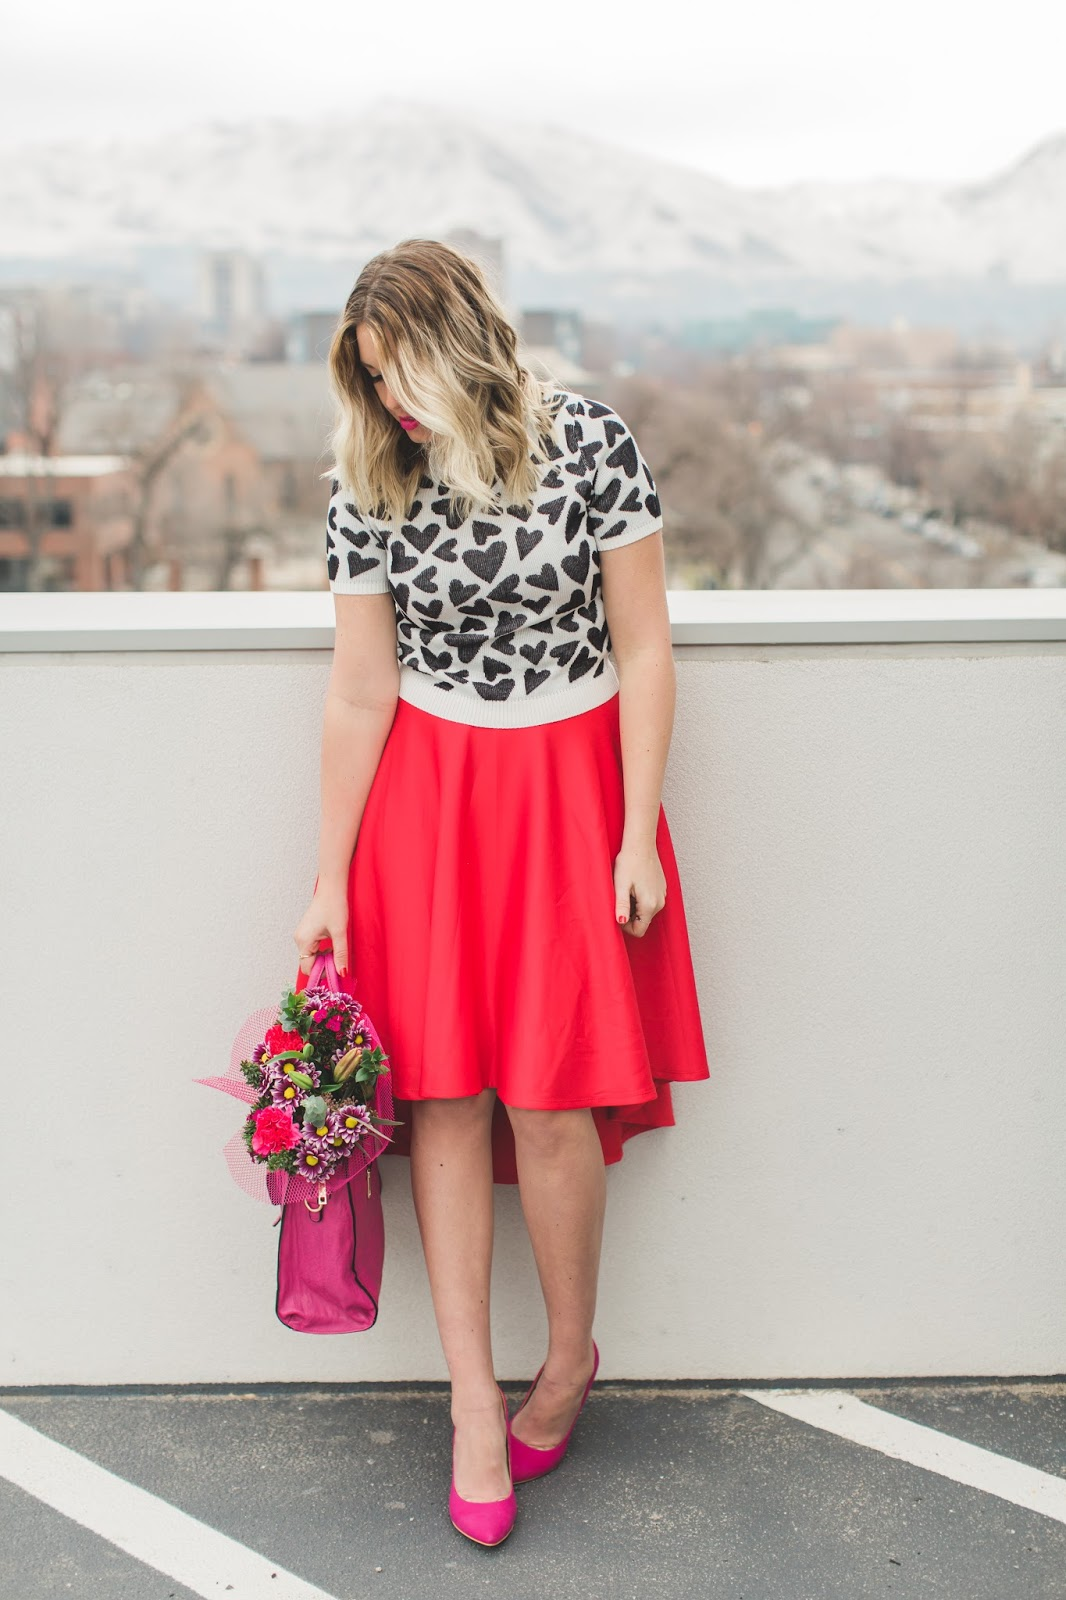 Valentine's Day Inspiration, Utah Fashion Blogger, Modest Outfit